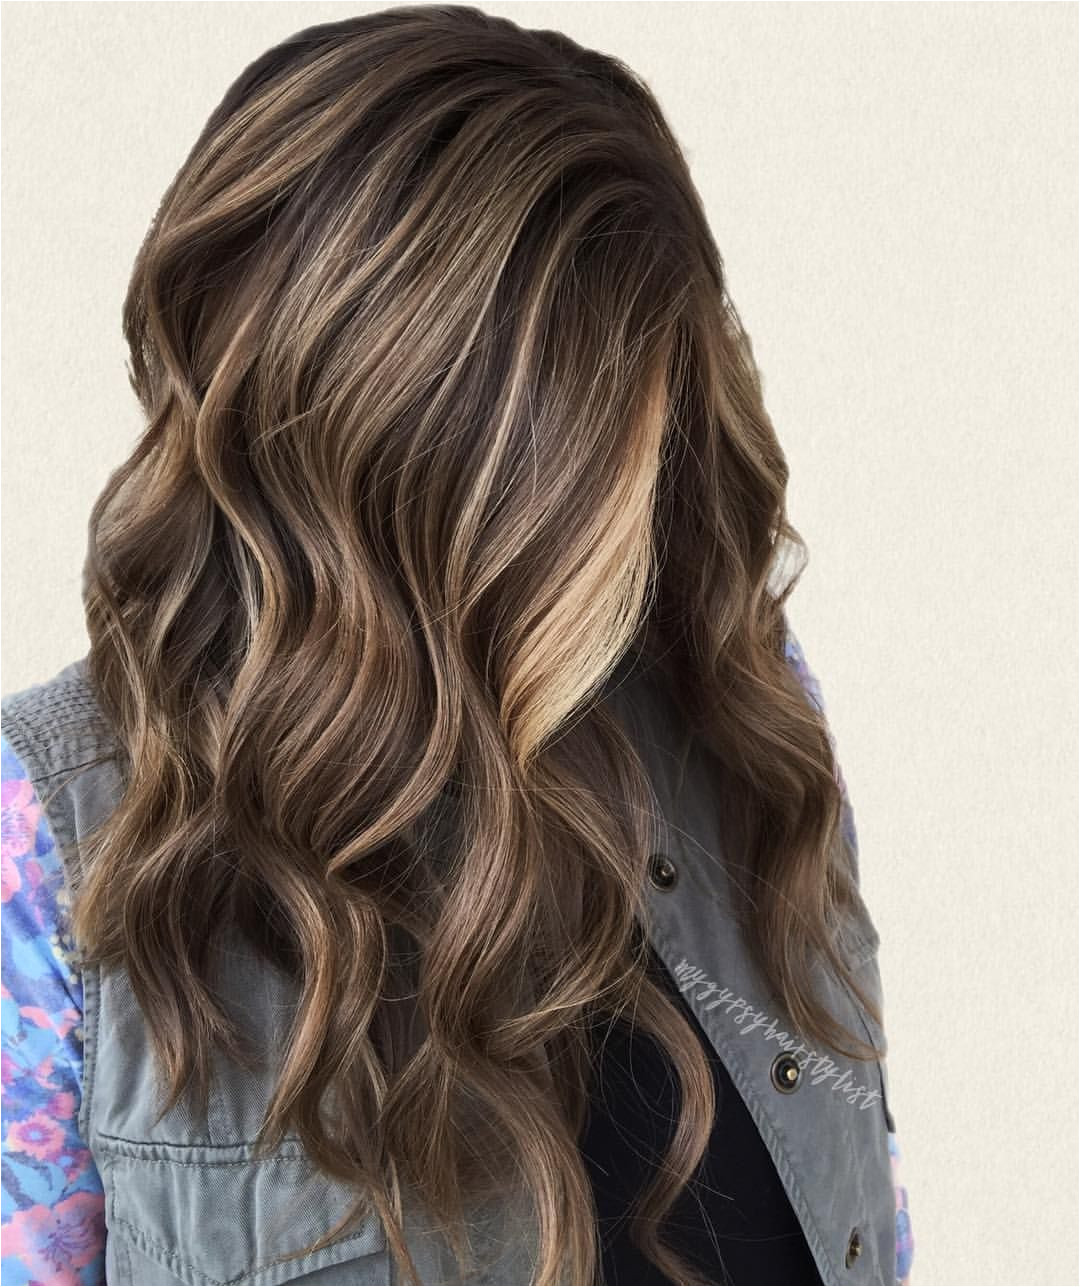 Balayage brunette lived in hair color natural hair color beach waves pretty hair INSTAGRAM mygypsyhairstylist